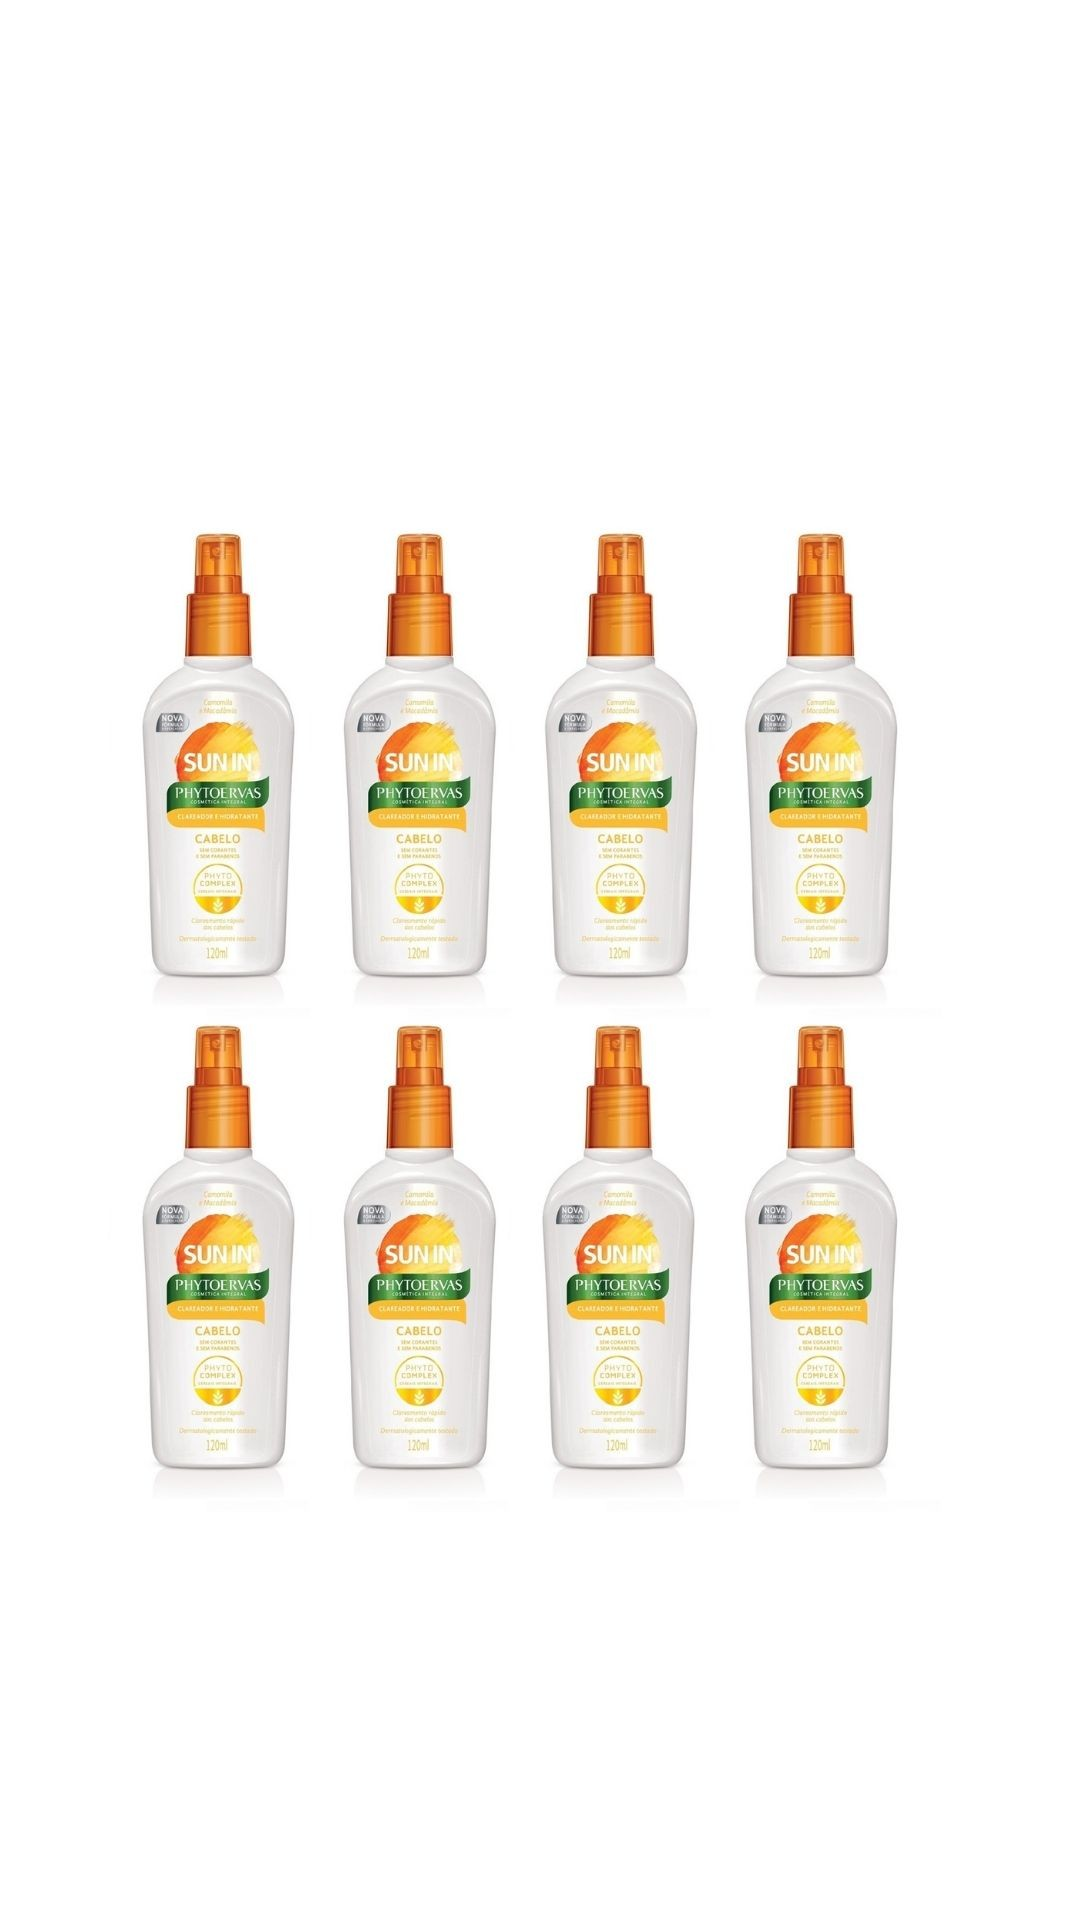 KIT 8 CLAREADOR DE CABELOS SPRAY SUN IN - PHYTOERVAS 120ML